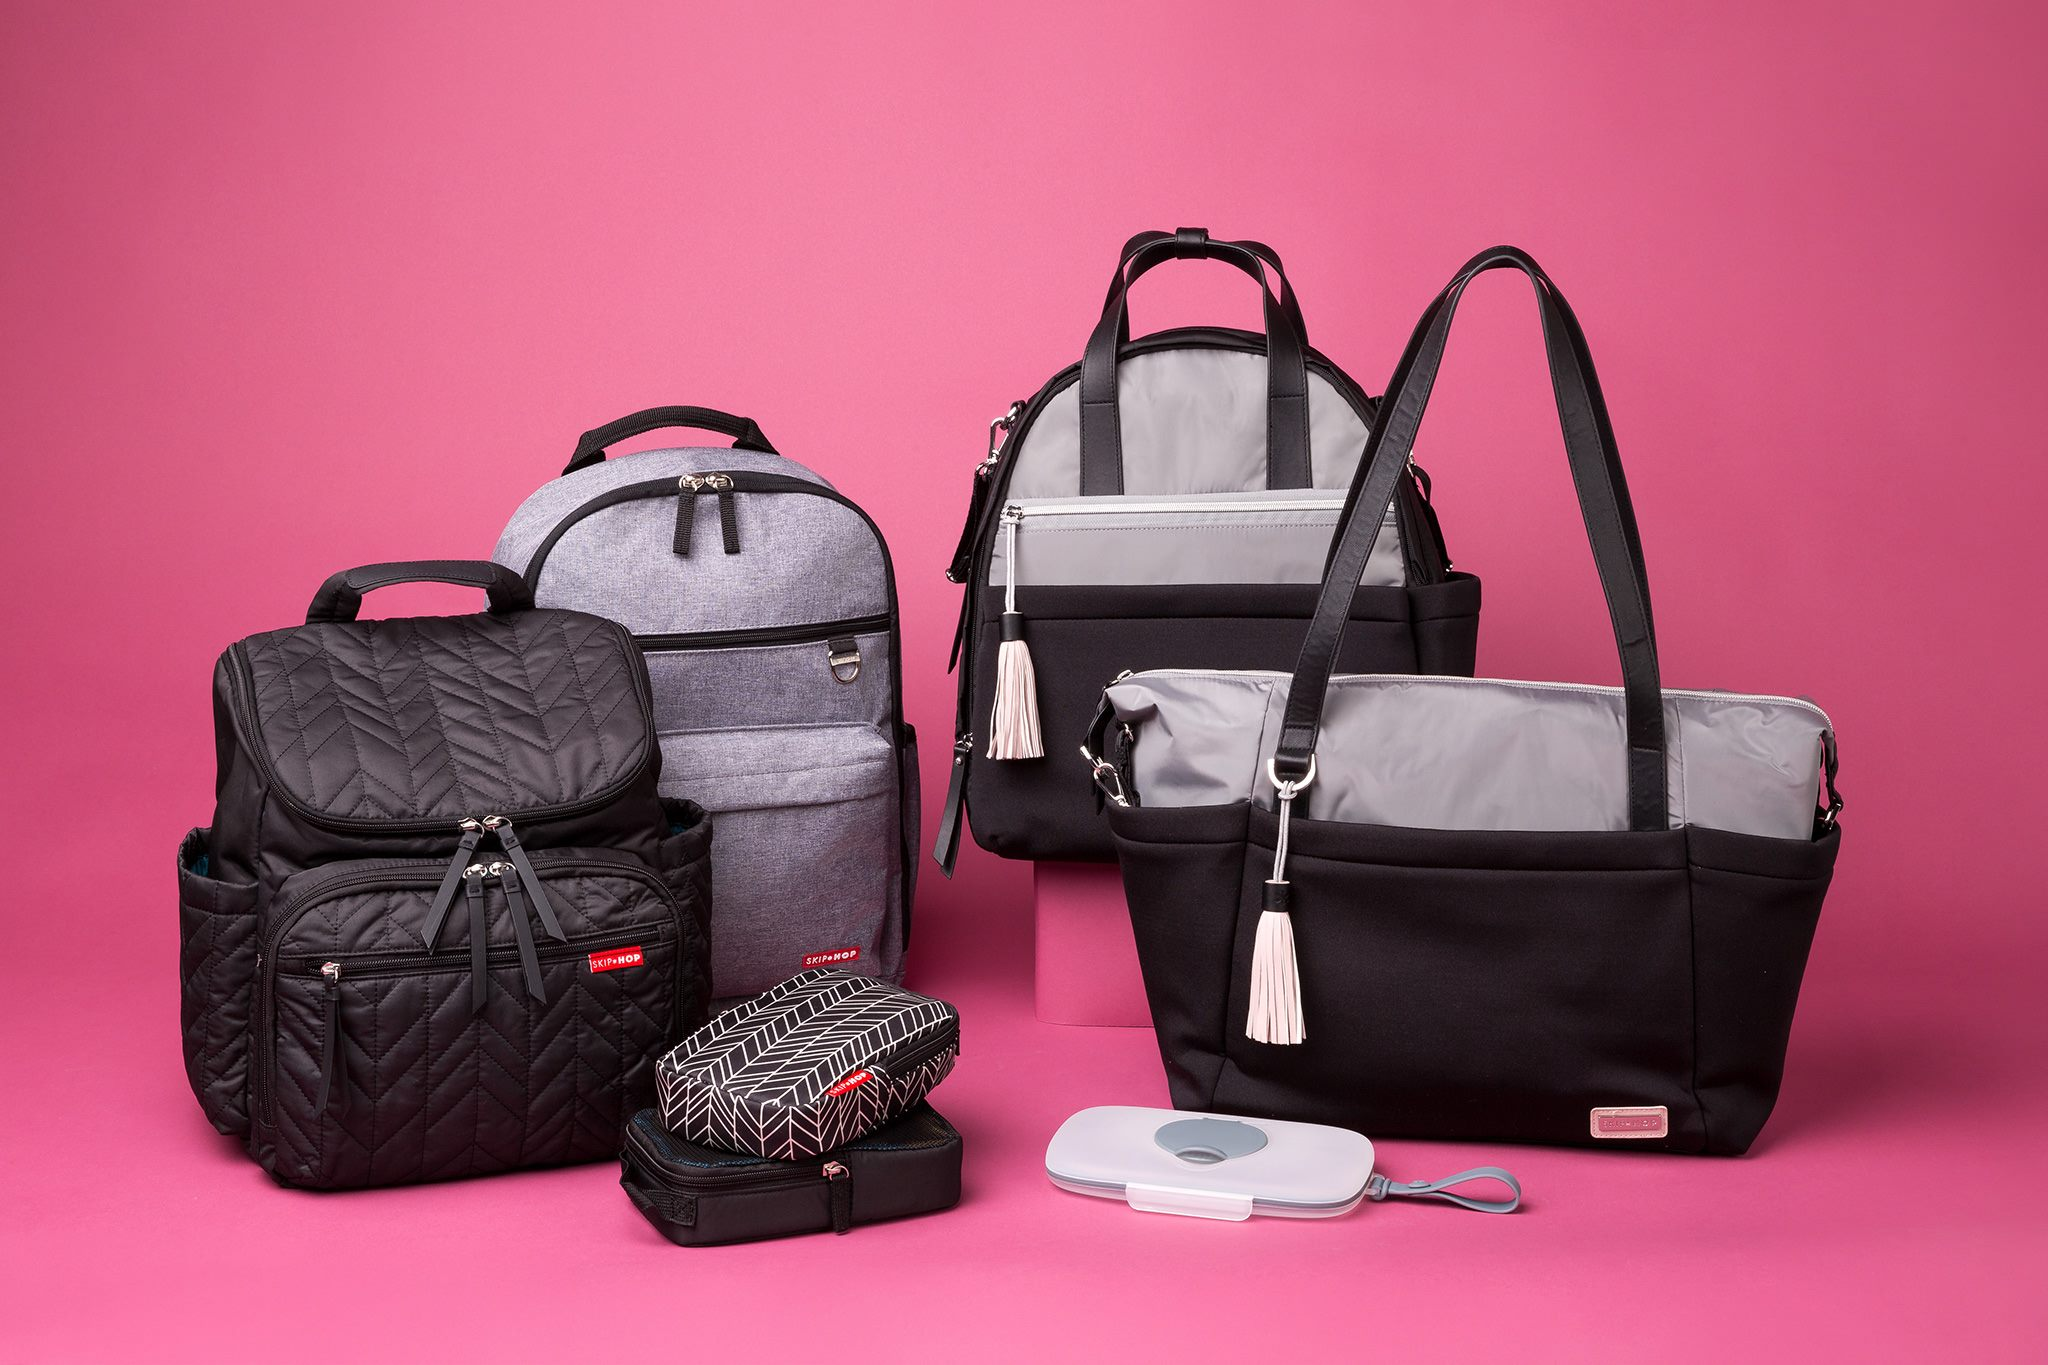 bcd7ebded995 Bentley Canada Boxing Day Sale  Save 40% Off Sitewide Using Promo Code